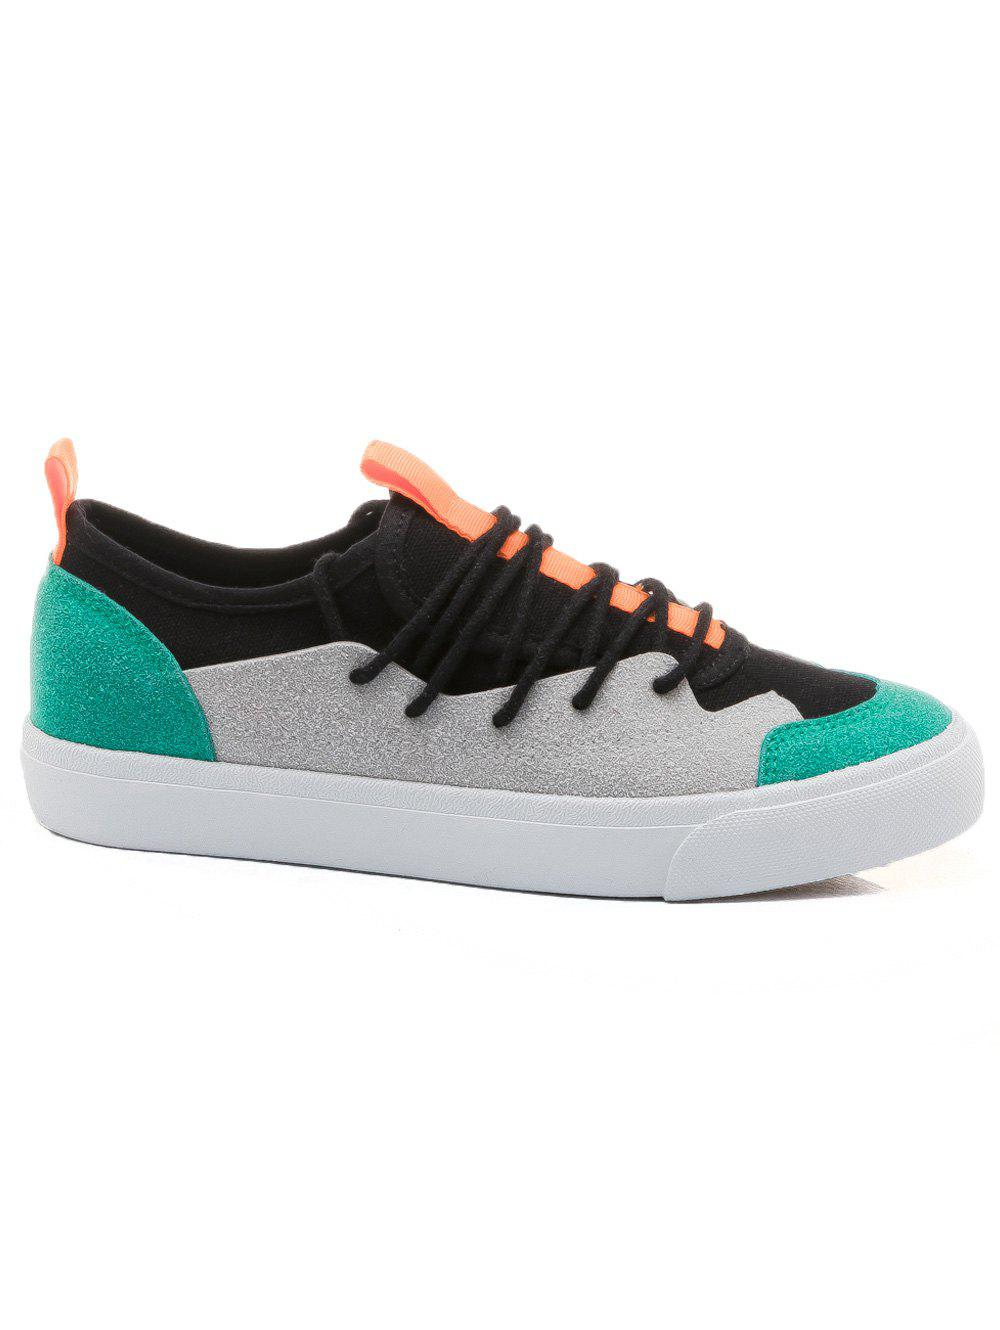 Color Block Low Heel Skate Shoes - GREEN 36